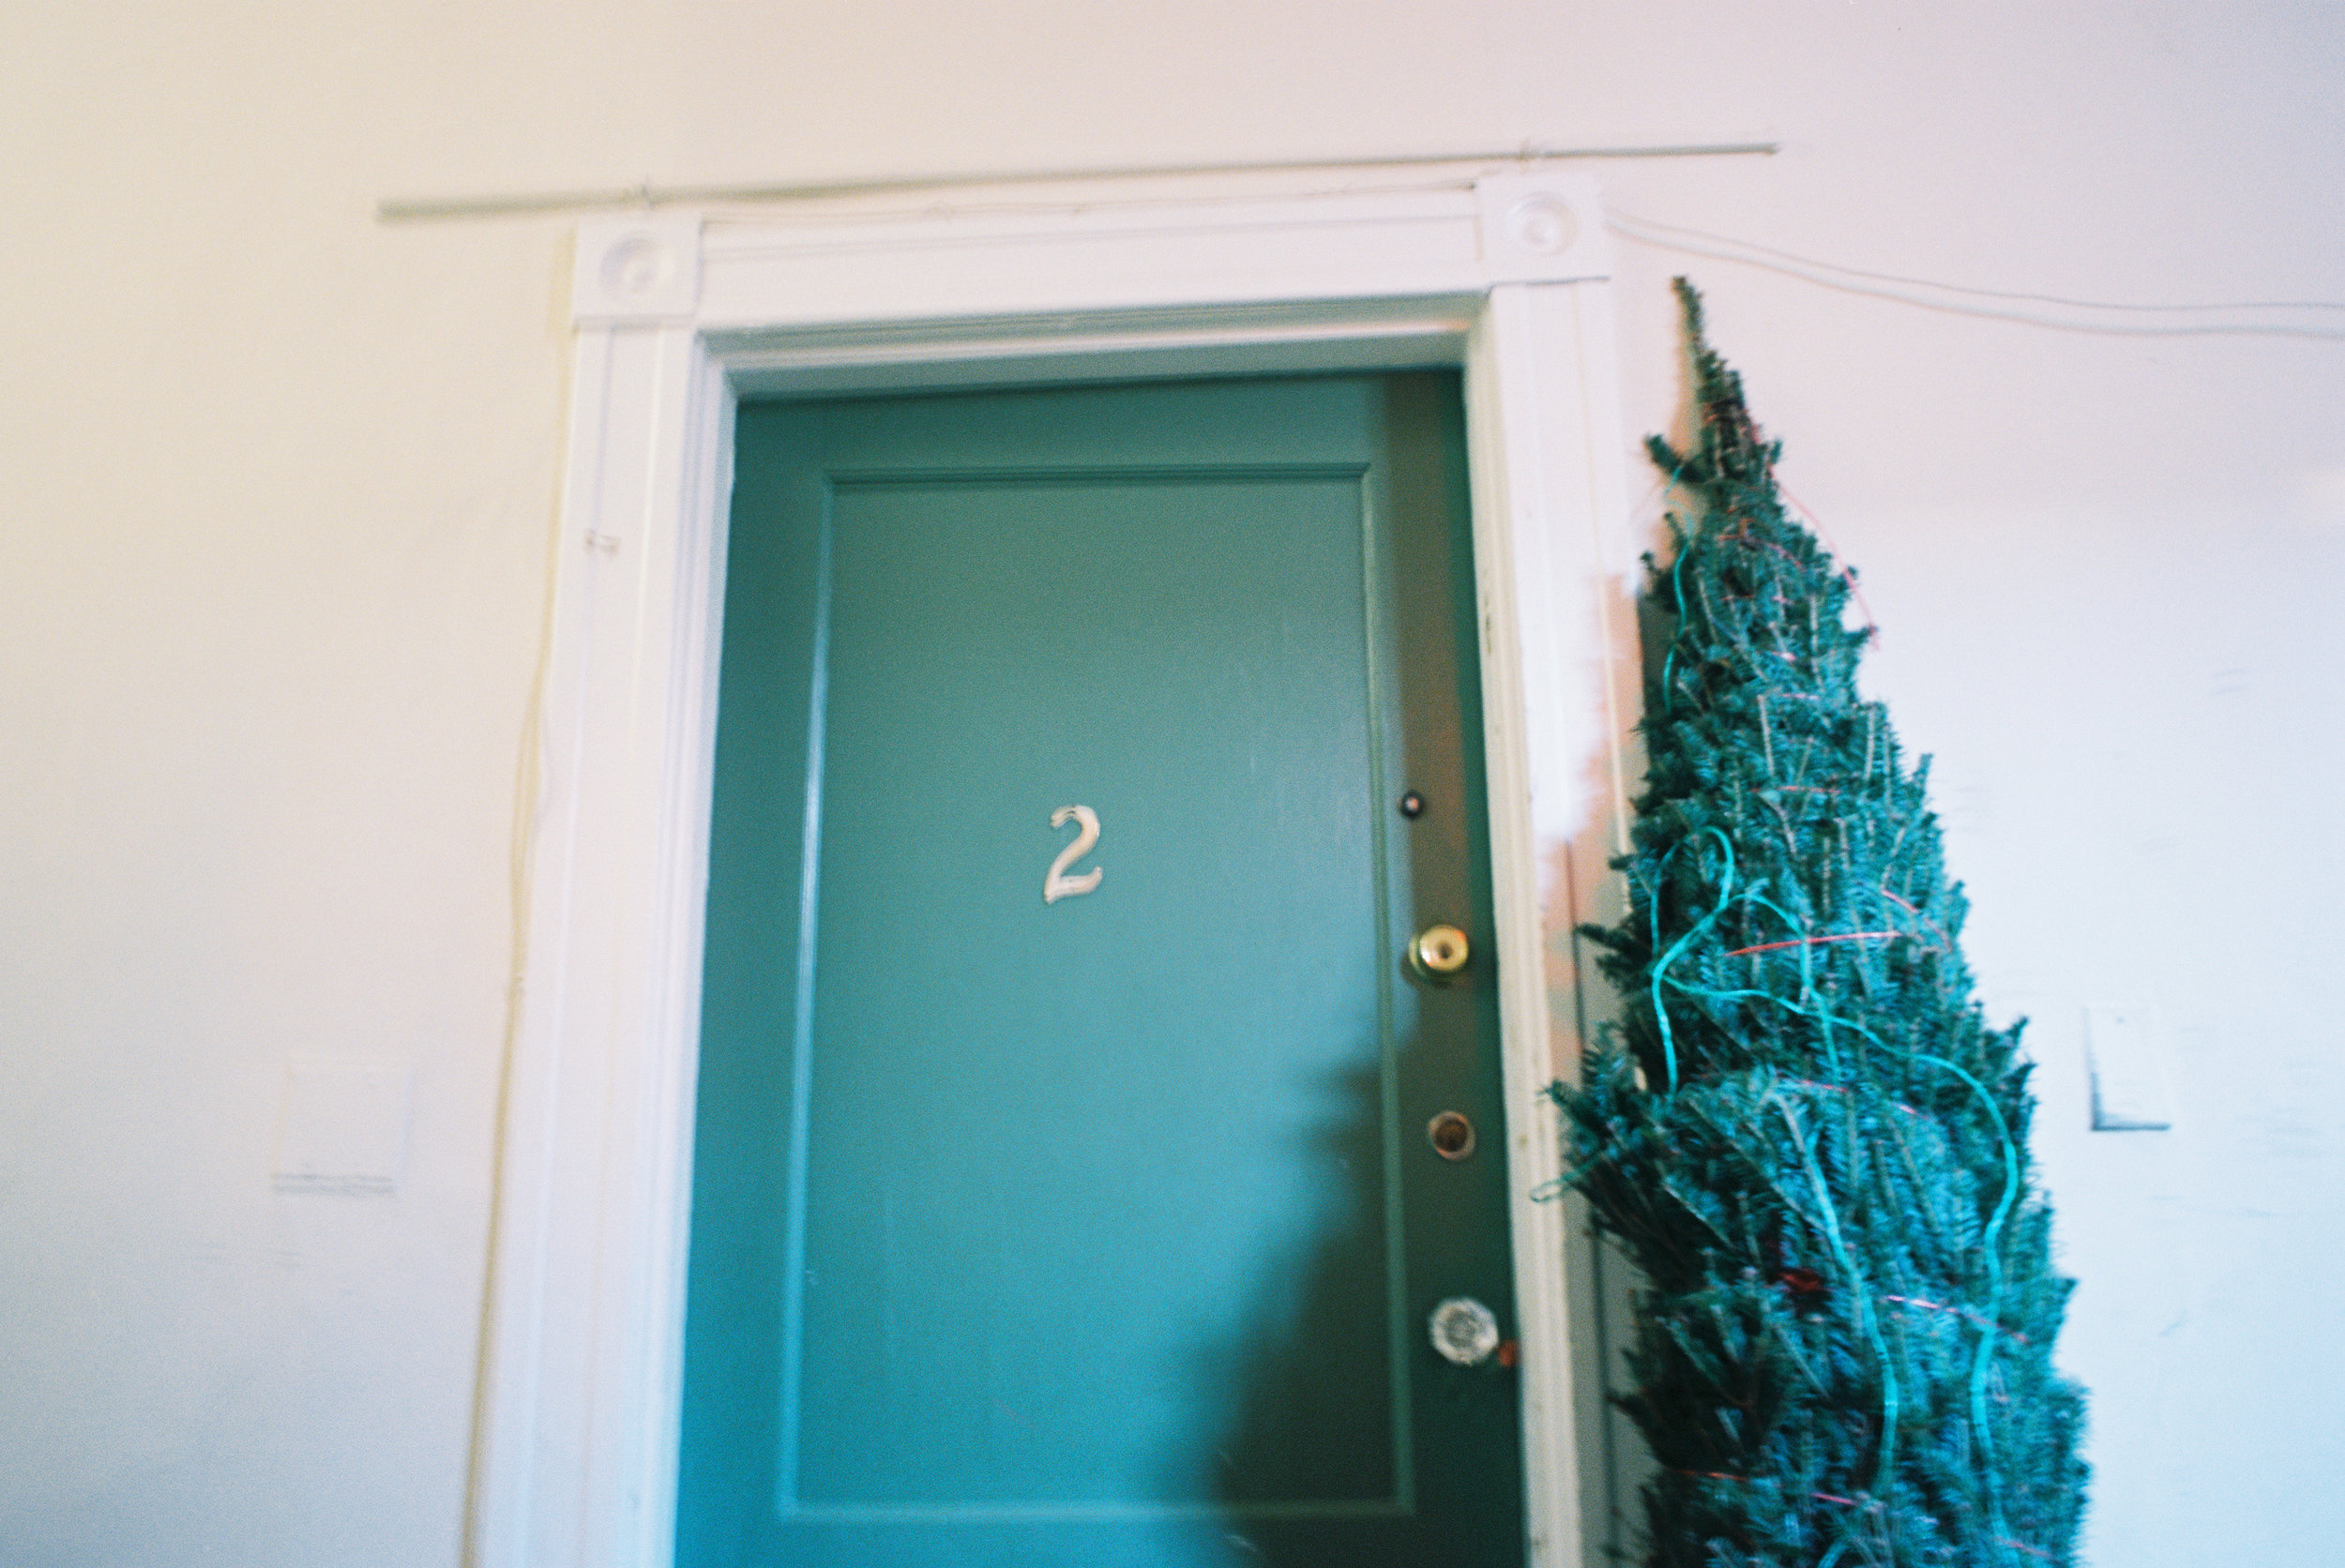 My first Christmas tree shot with agfa vista 200 35mm film